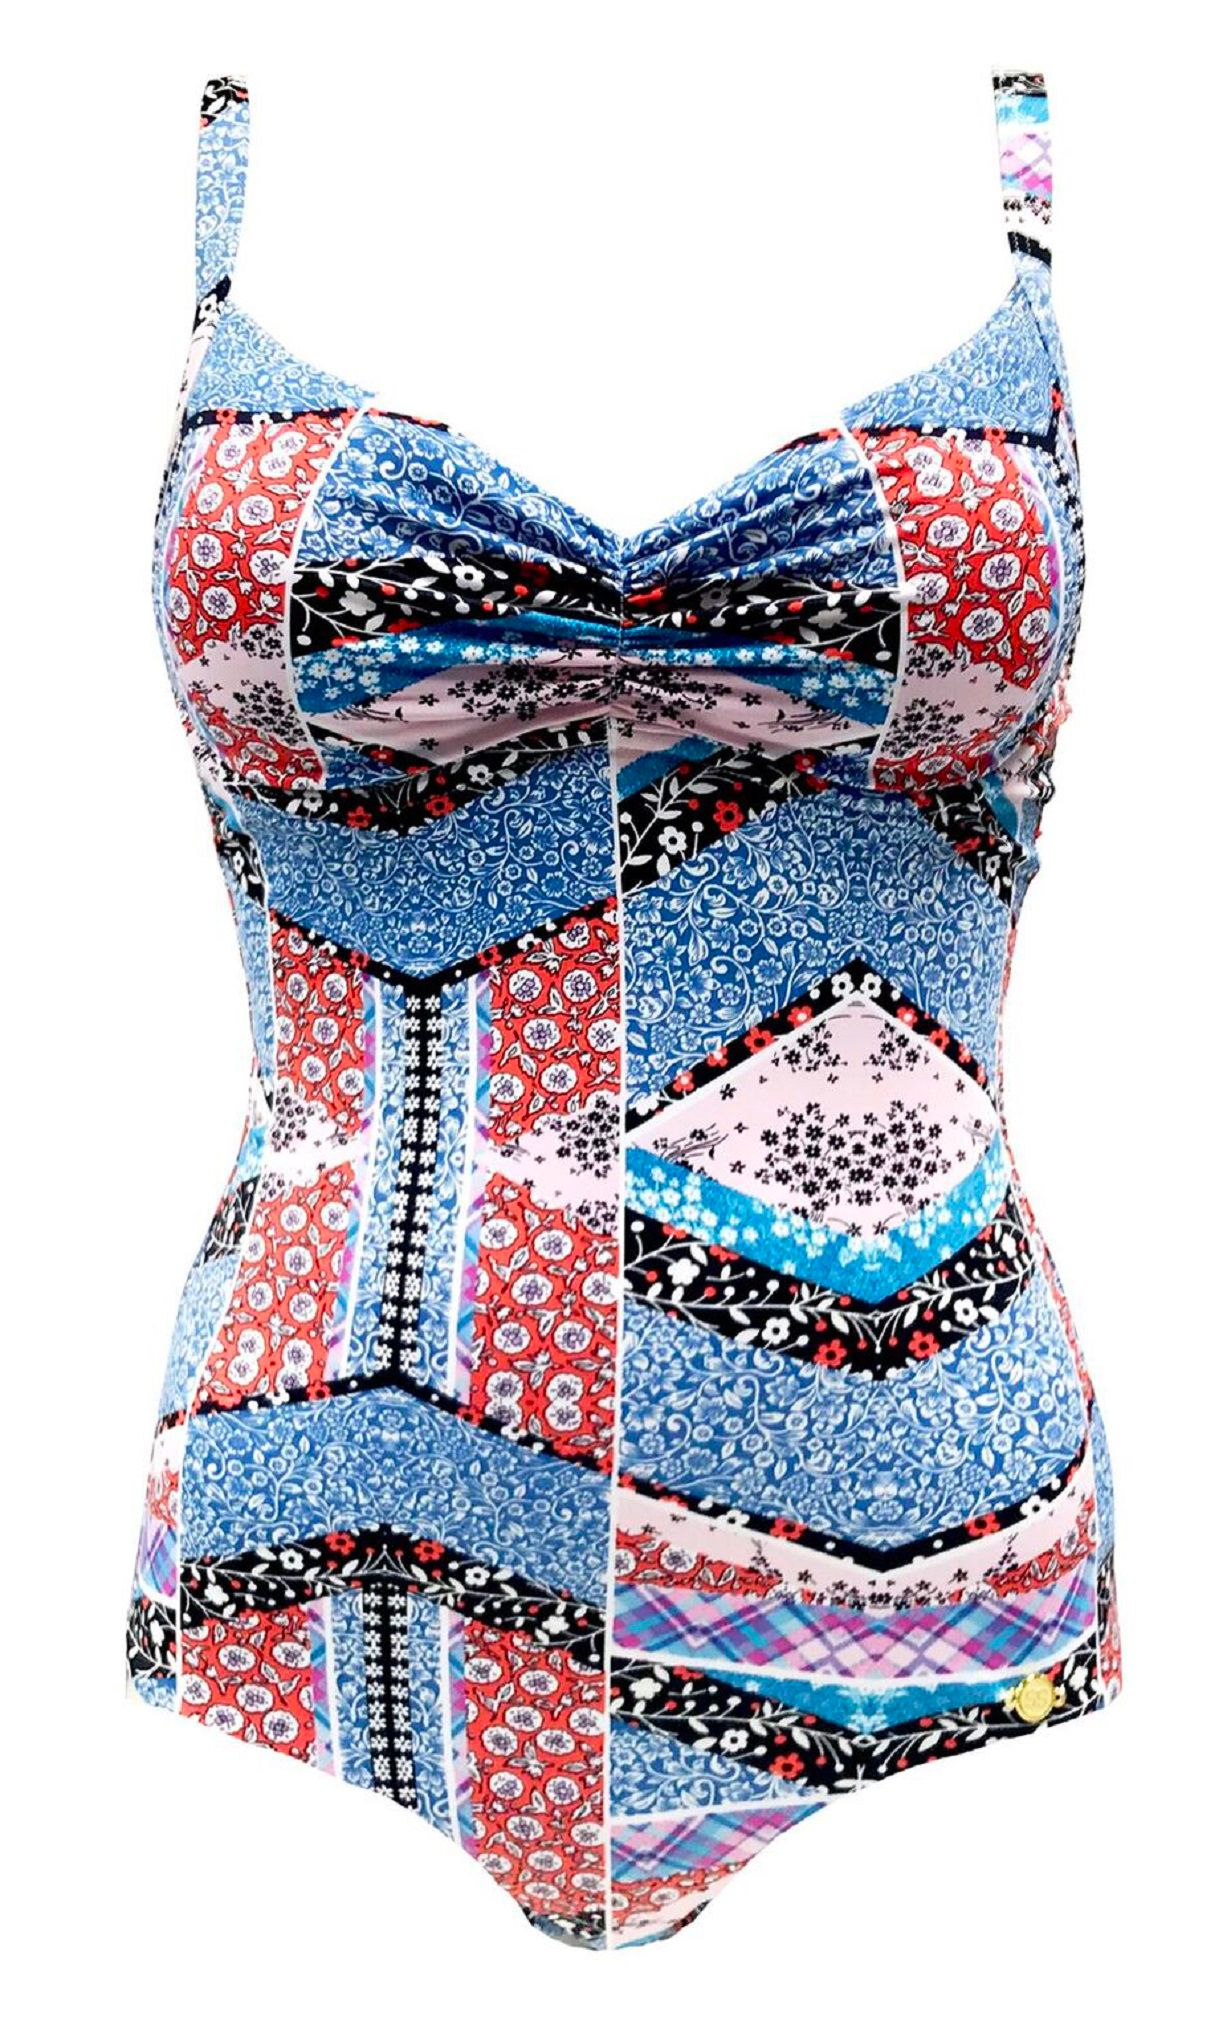 SUNSEEKER Decodaze Classic Cupsized Swimsuit, Multi-Coloured